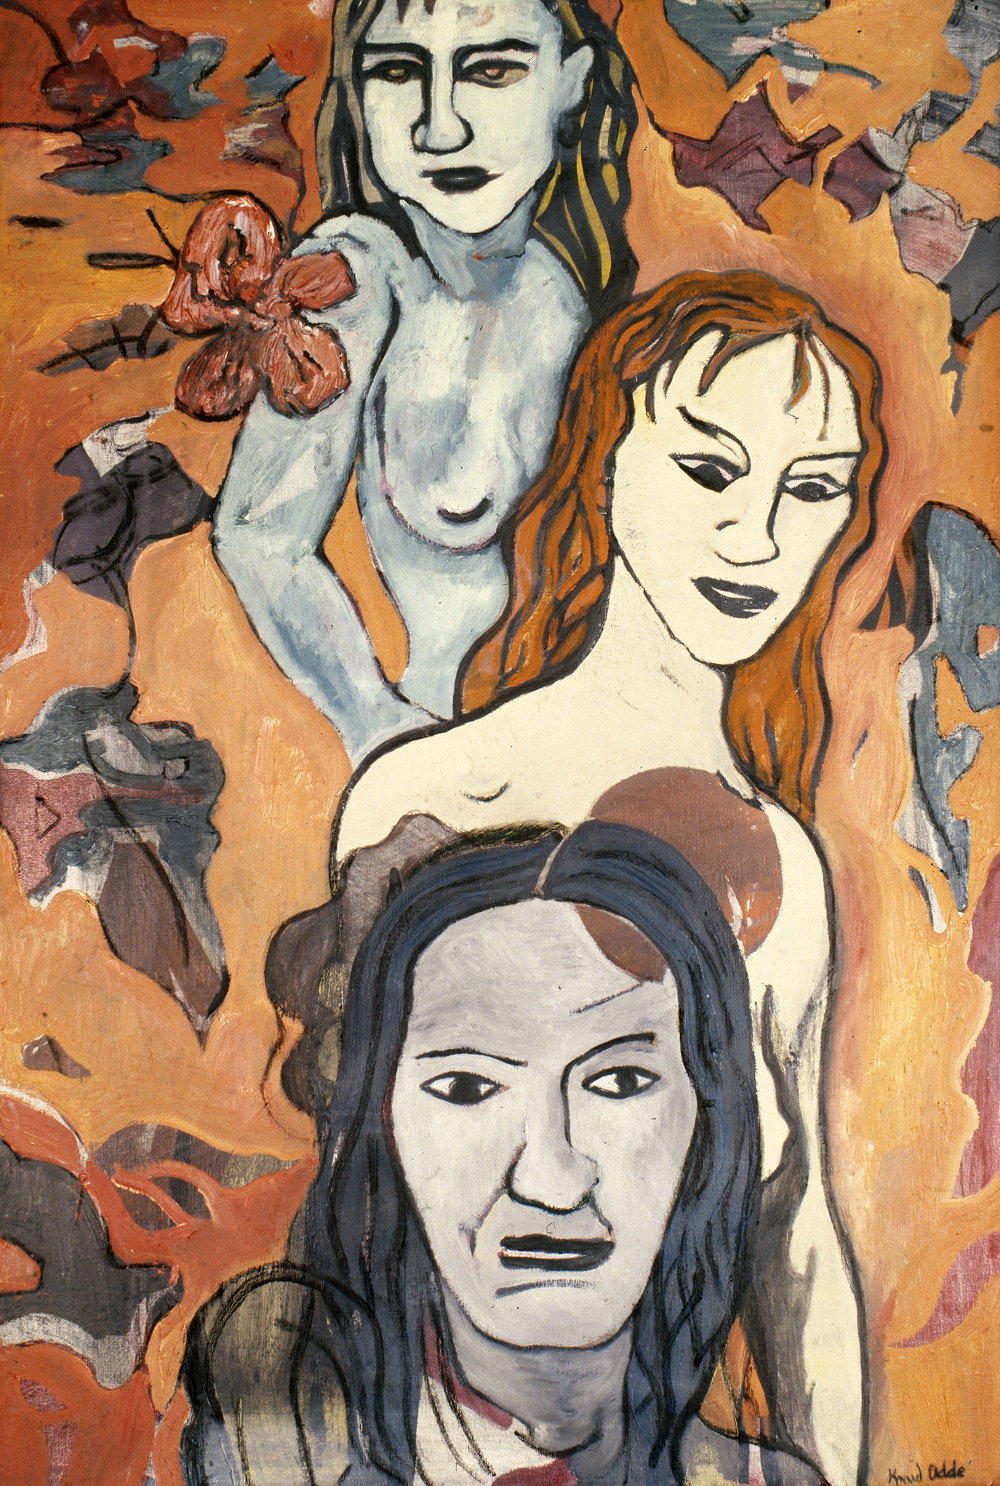 Canvas_Three Women (after Pettibon)_60x40cm_Oil on canvas_1989